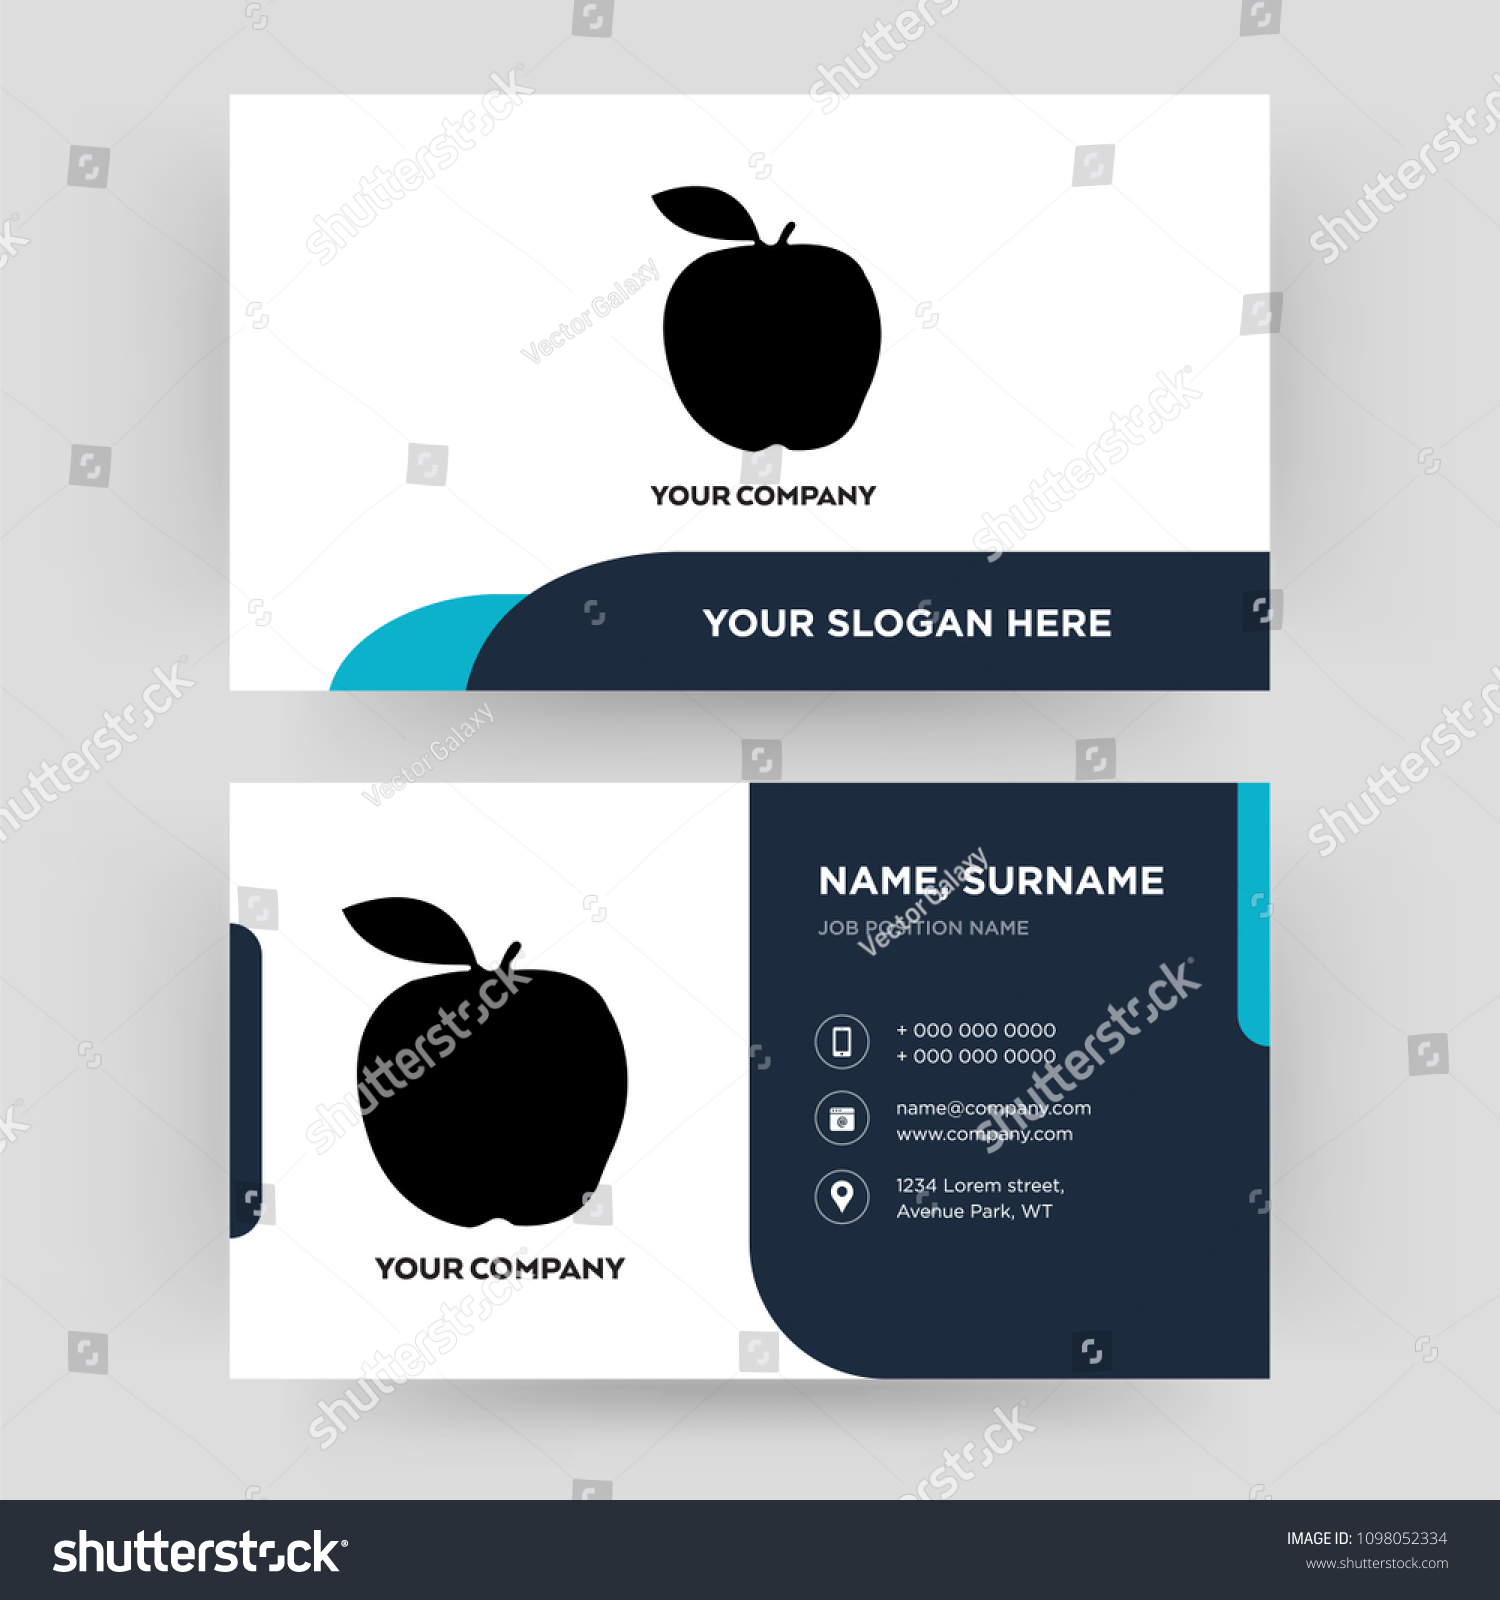 Apple Business Card Design Template Visiting Stock Photo (Photo ...